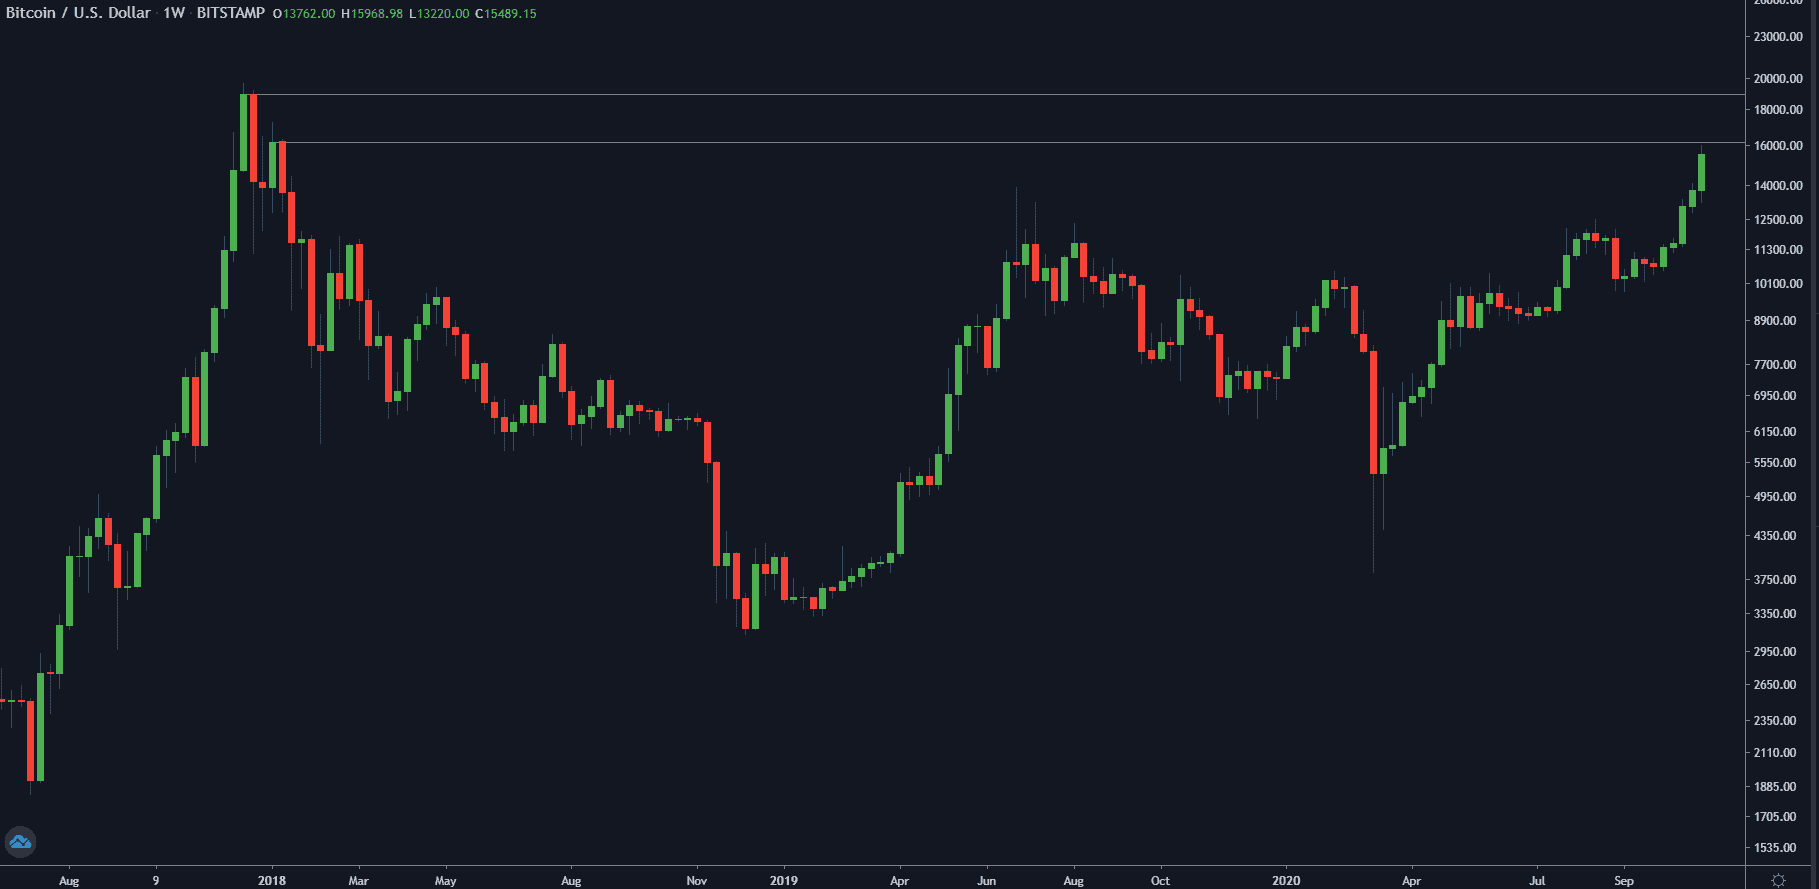 BTCUSD Weekly Chart. Source: TradingView